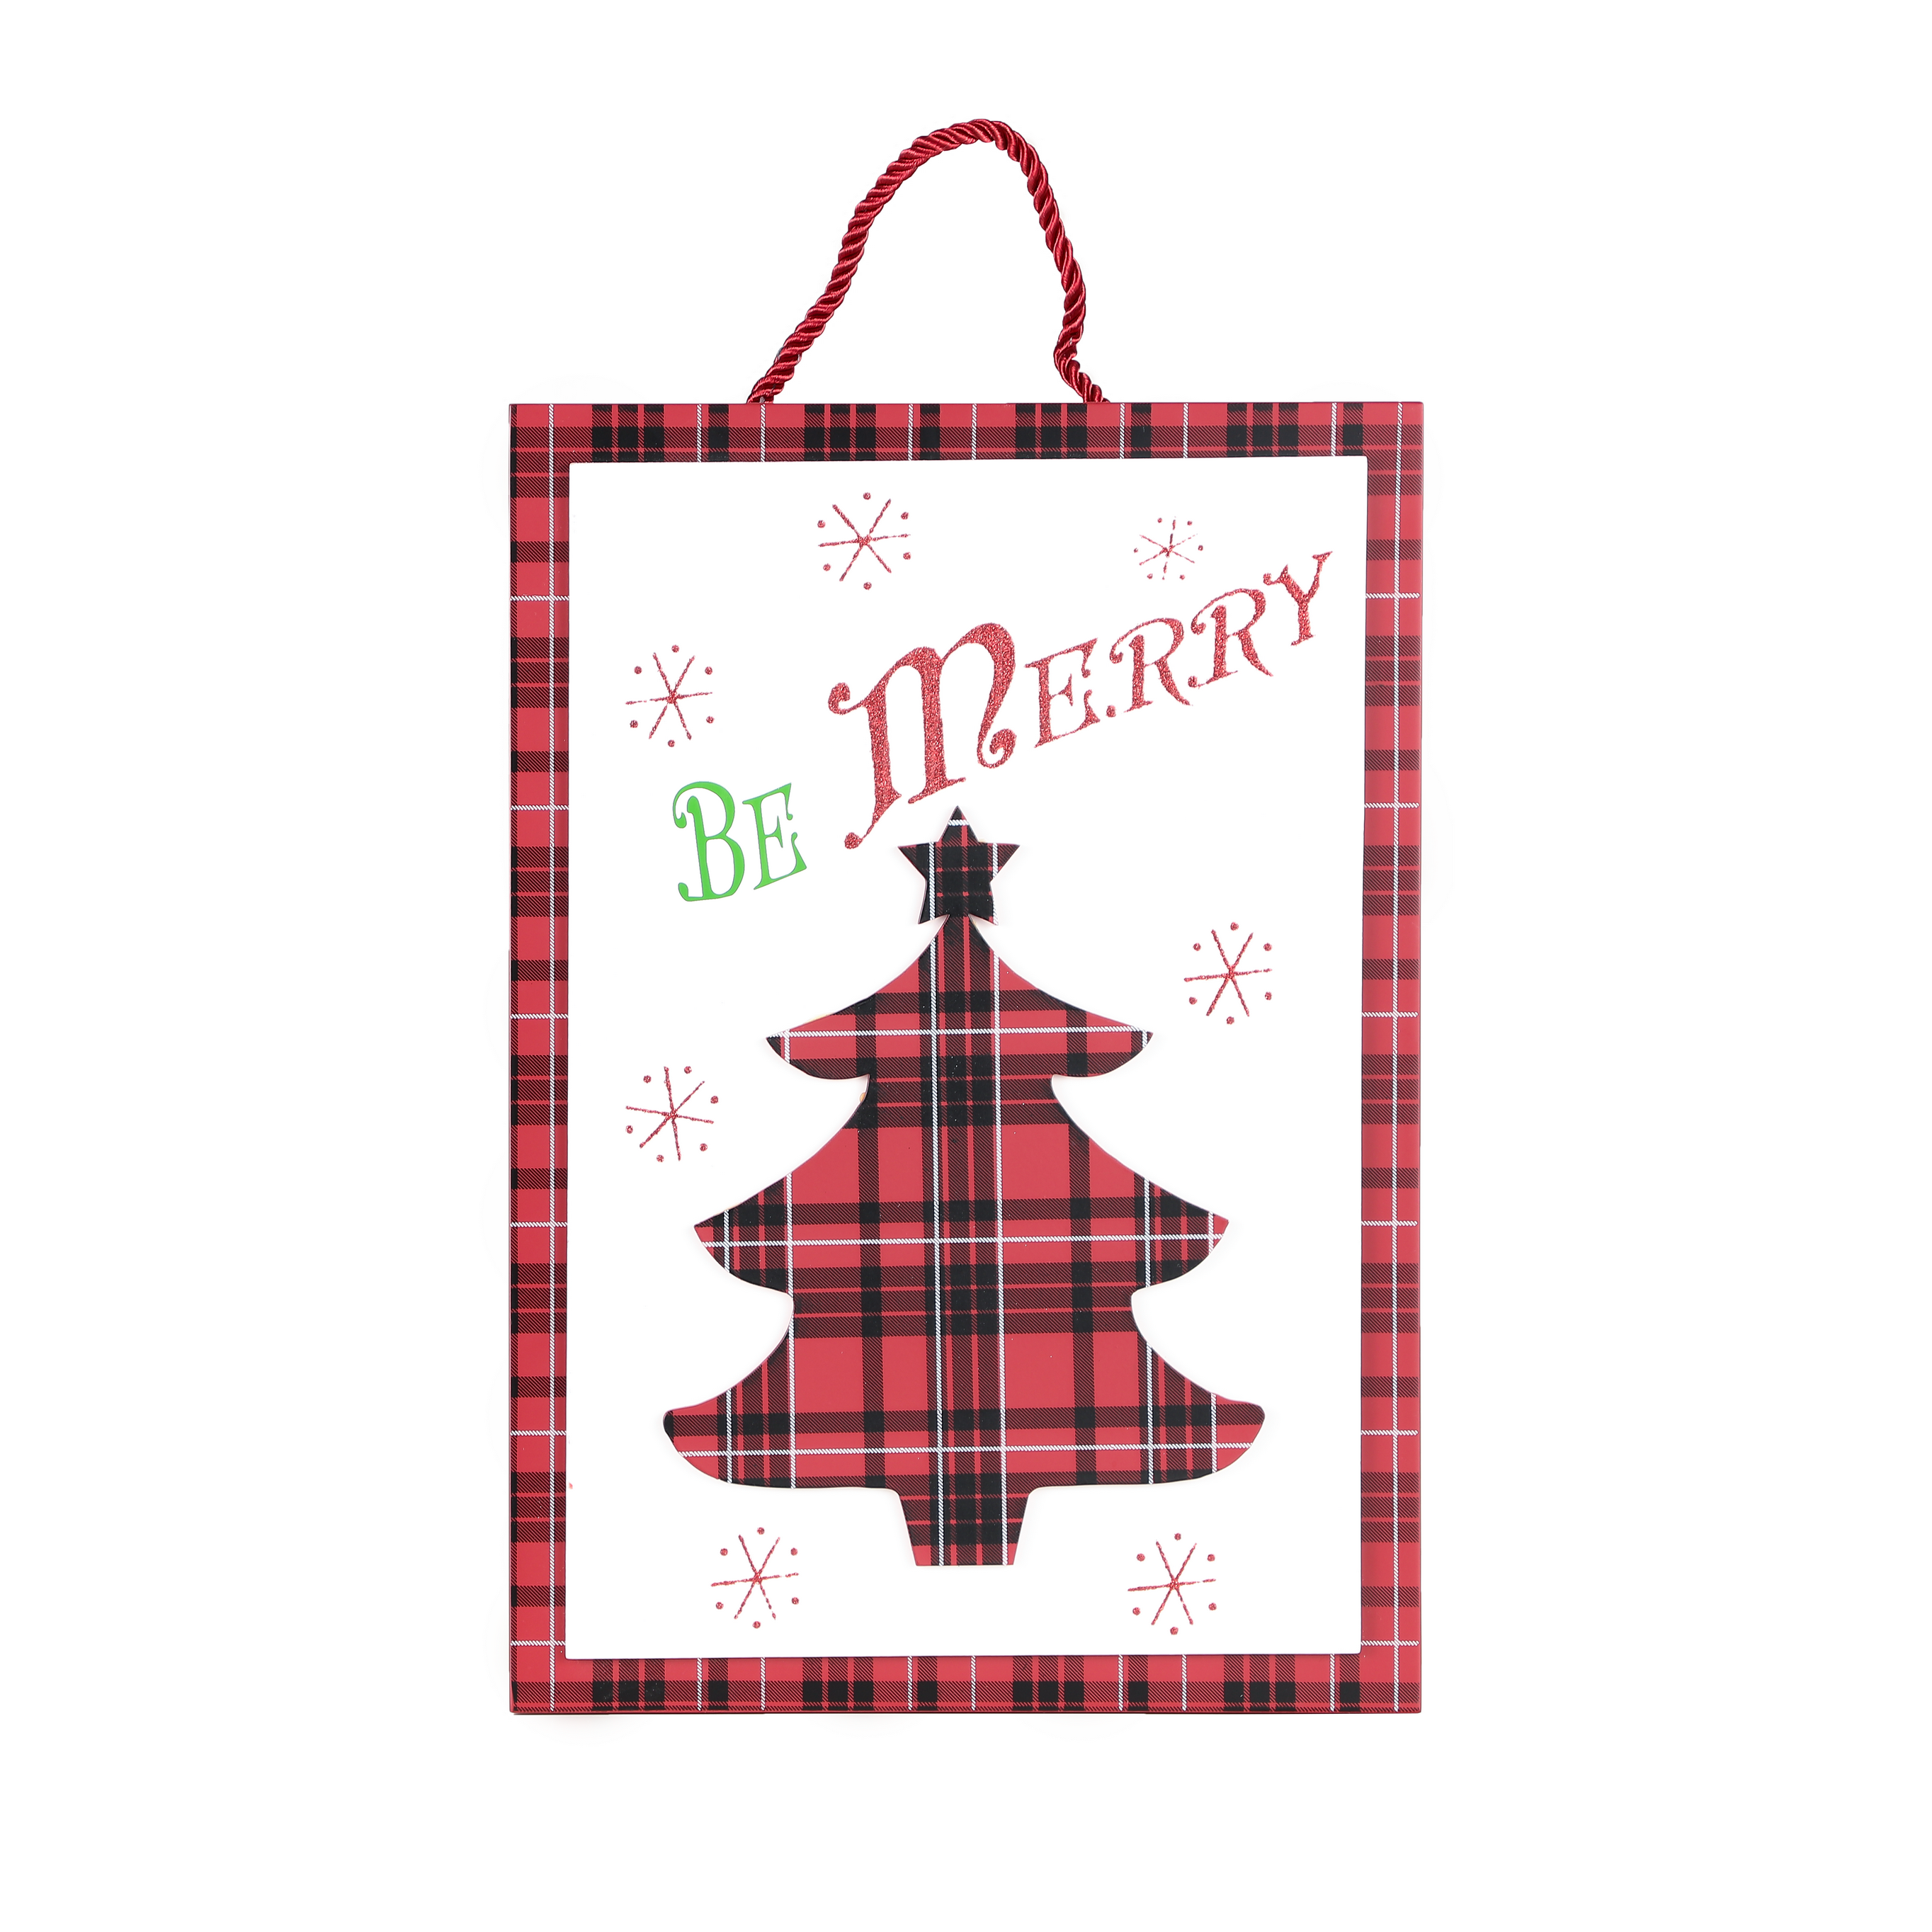 Promotional Christmas wooden photo frame